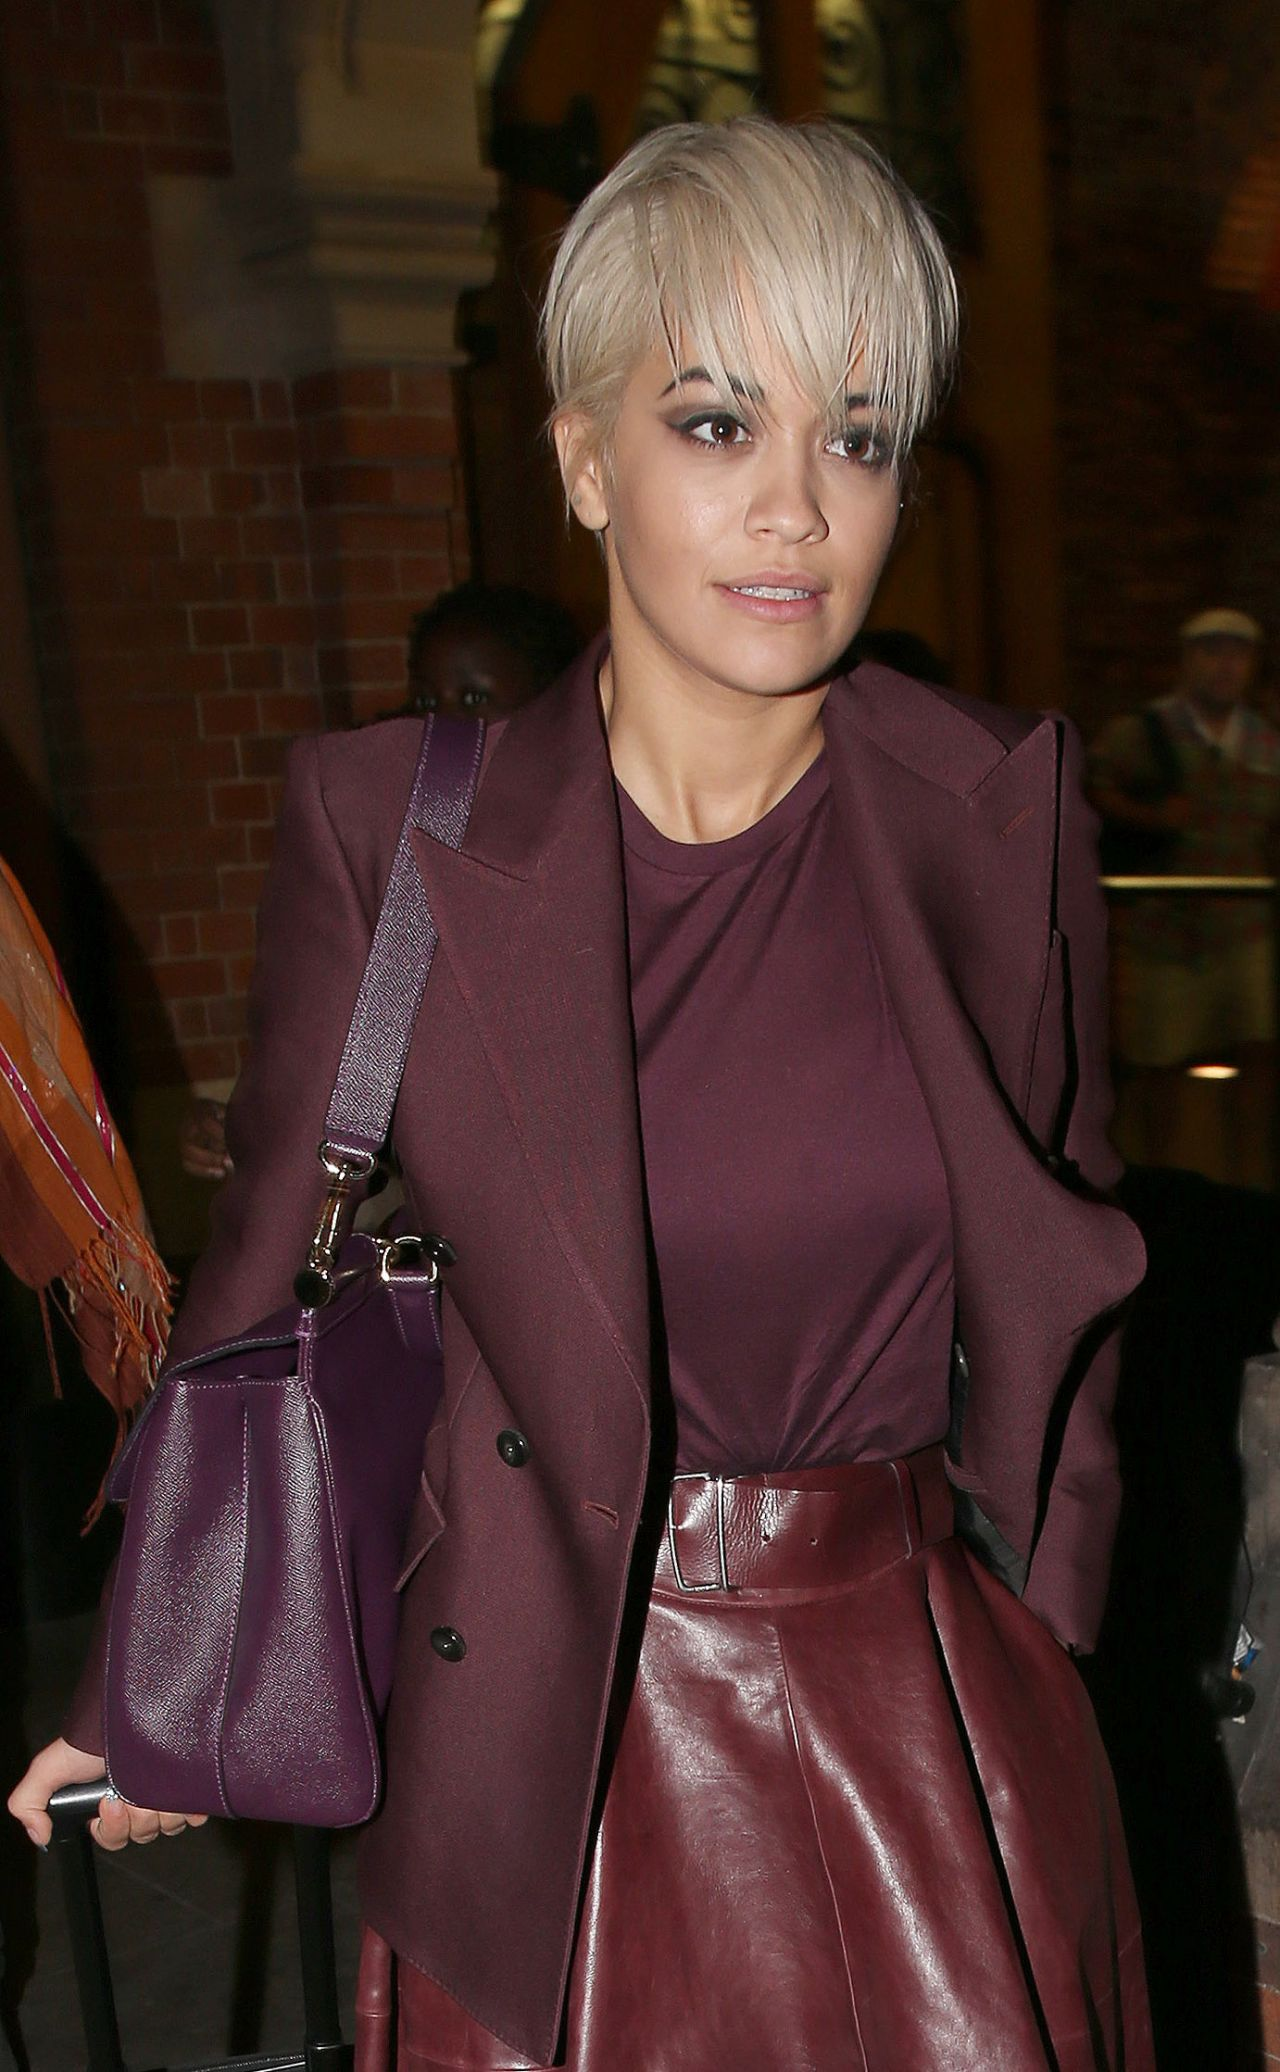 rita-ora-at-king-s-cross-railway-station-in-london-july-2015_7